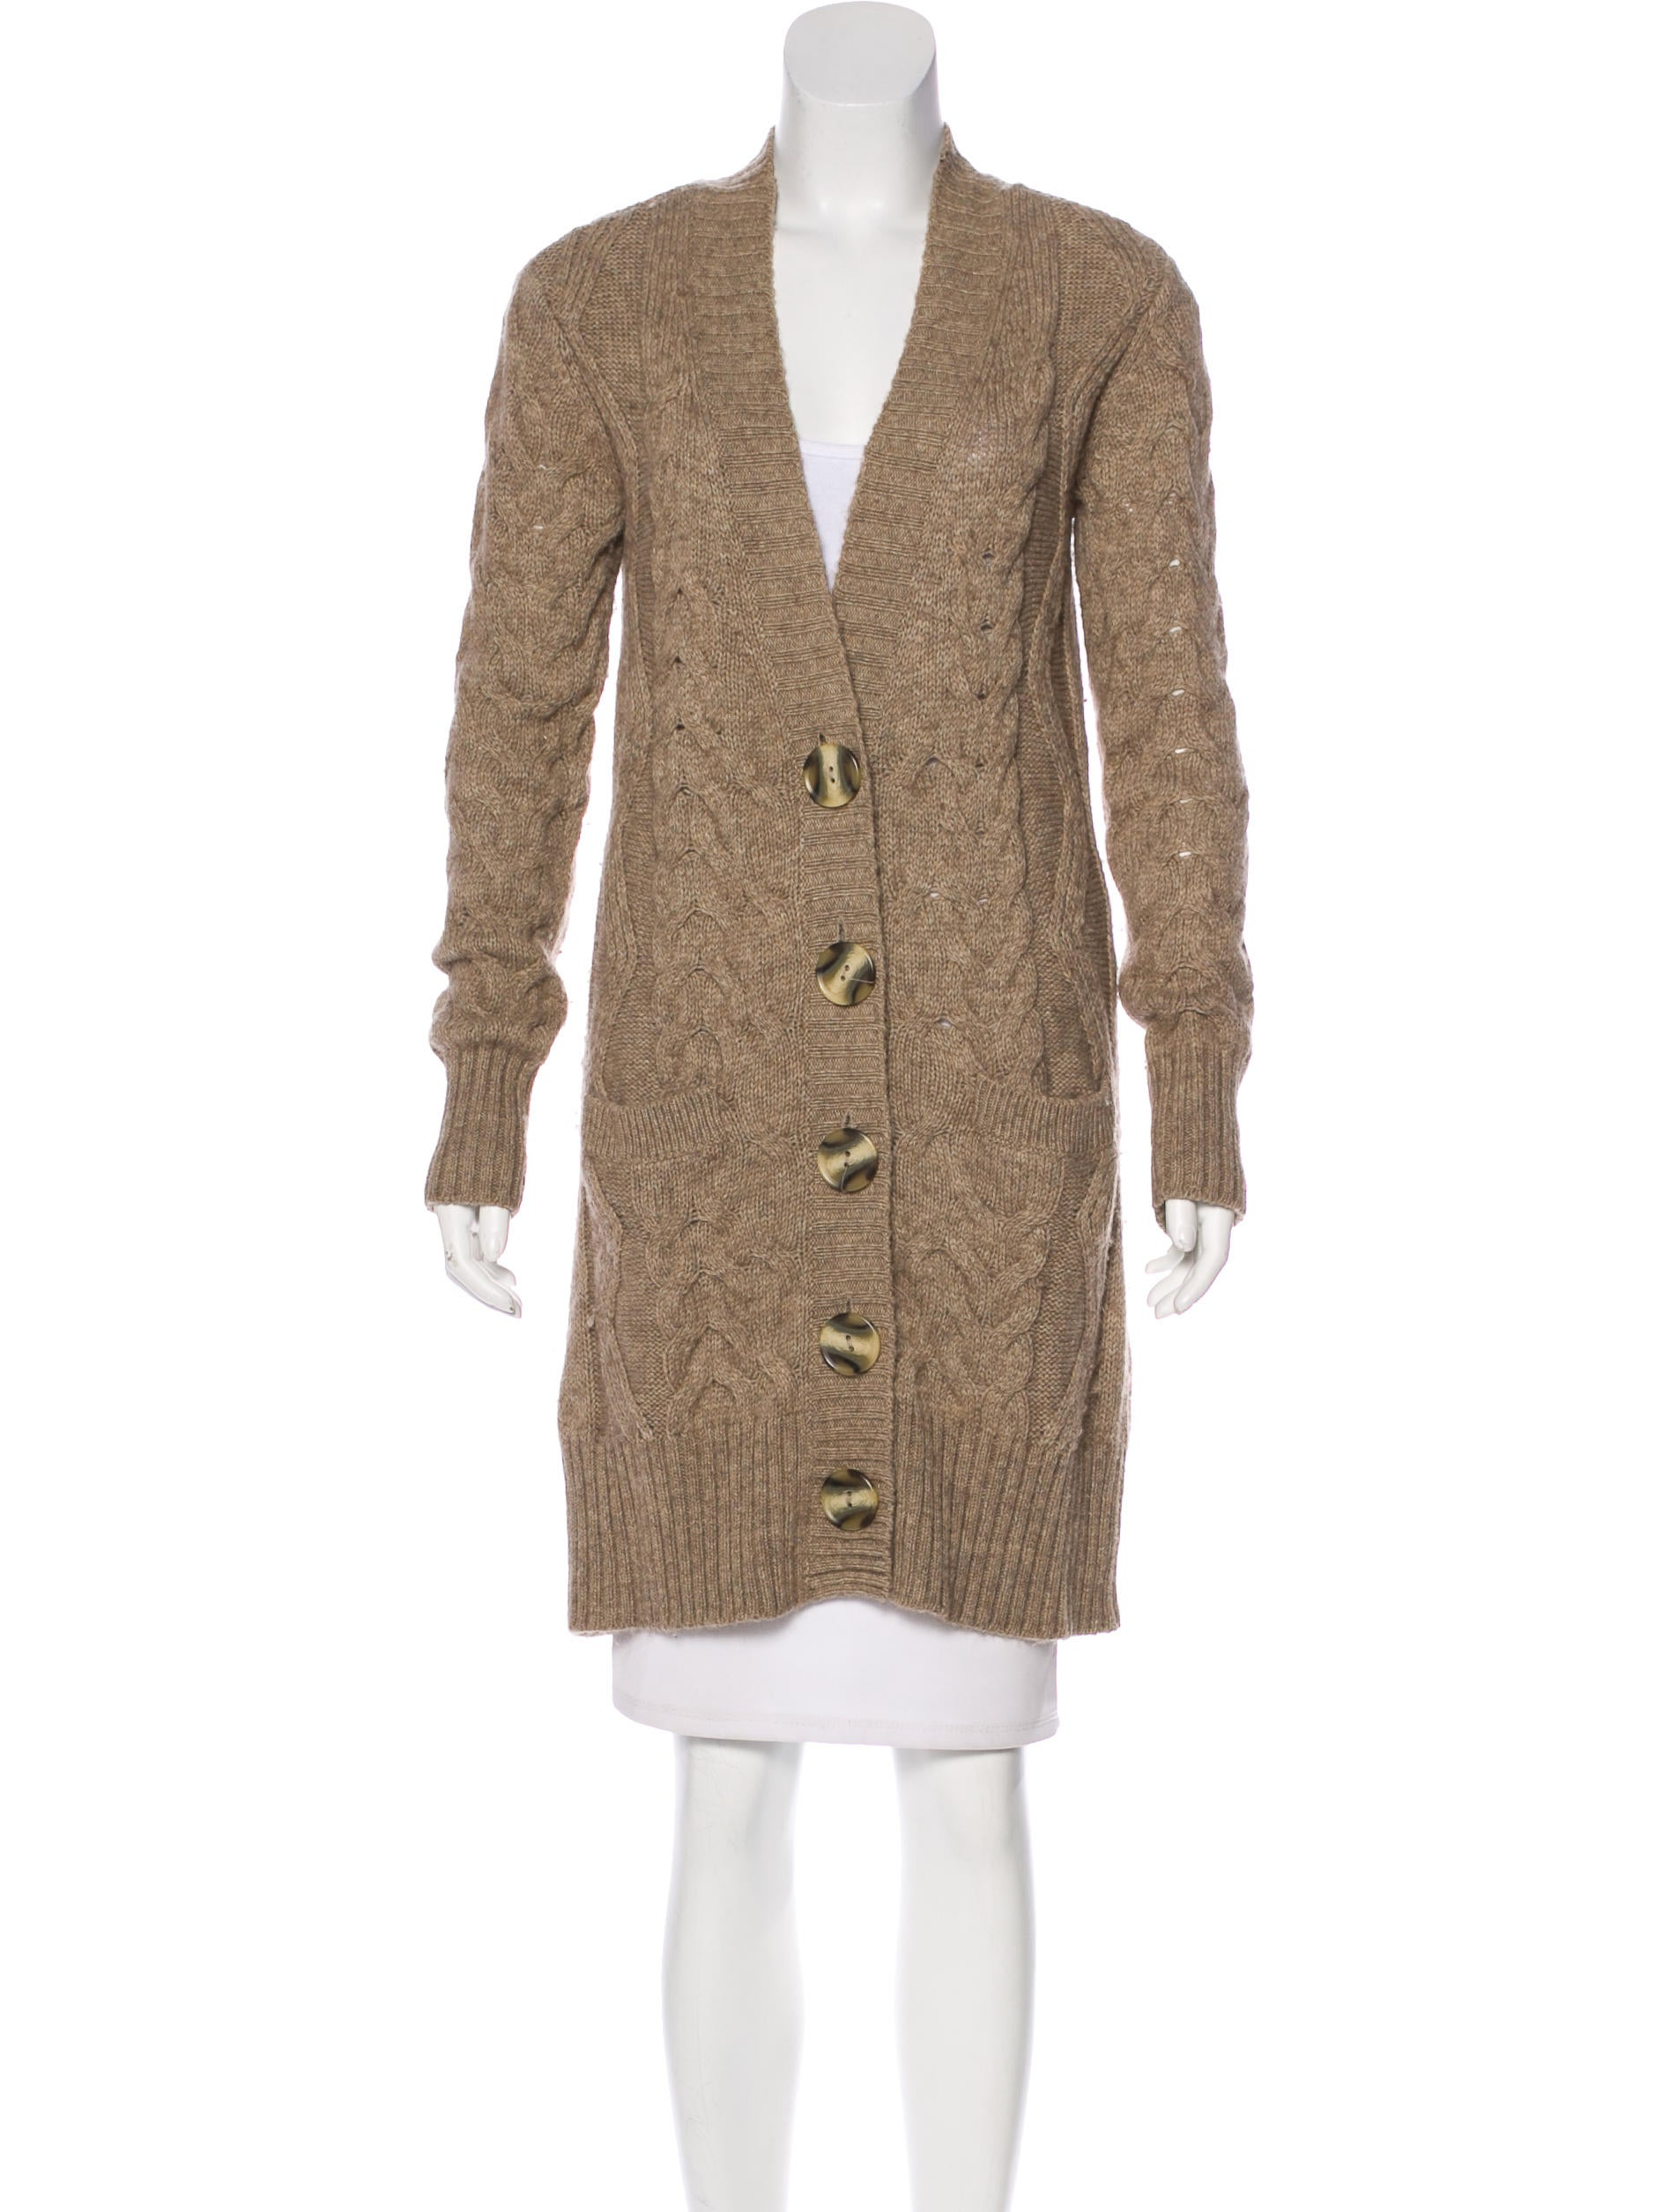 Vince Long Cable Knit Cardigan - Clothing - WVN28846 | The RealReal